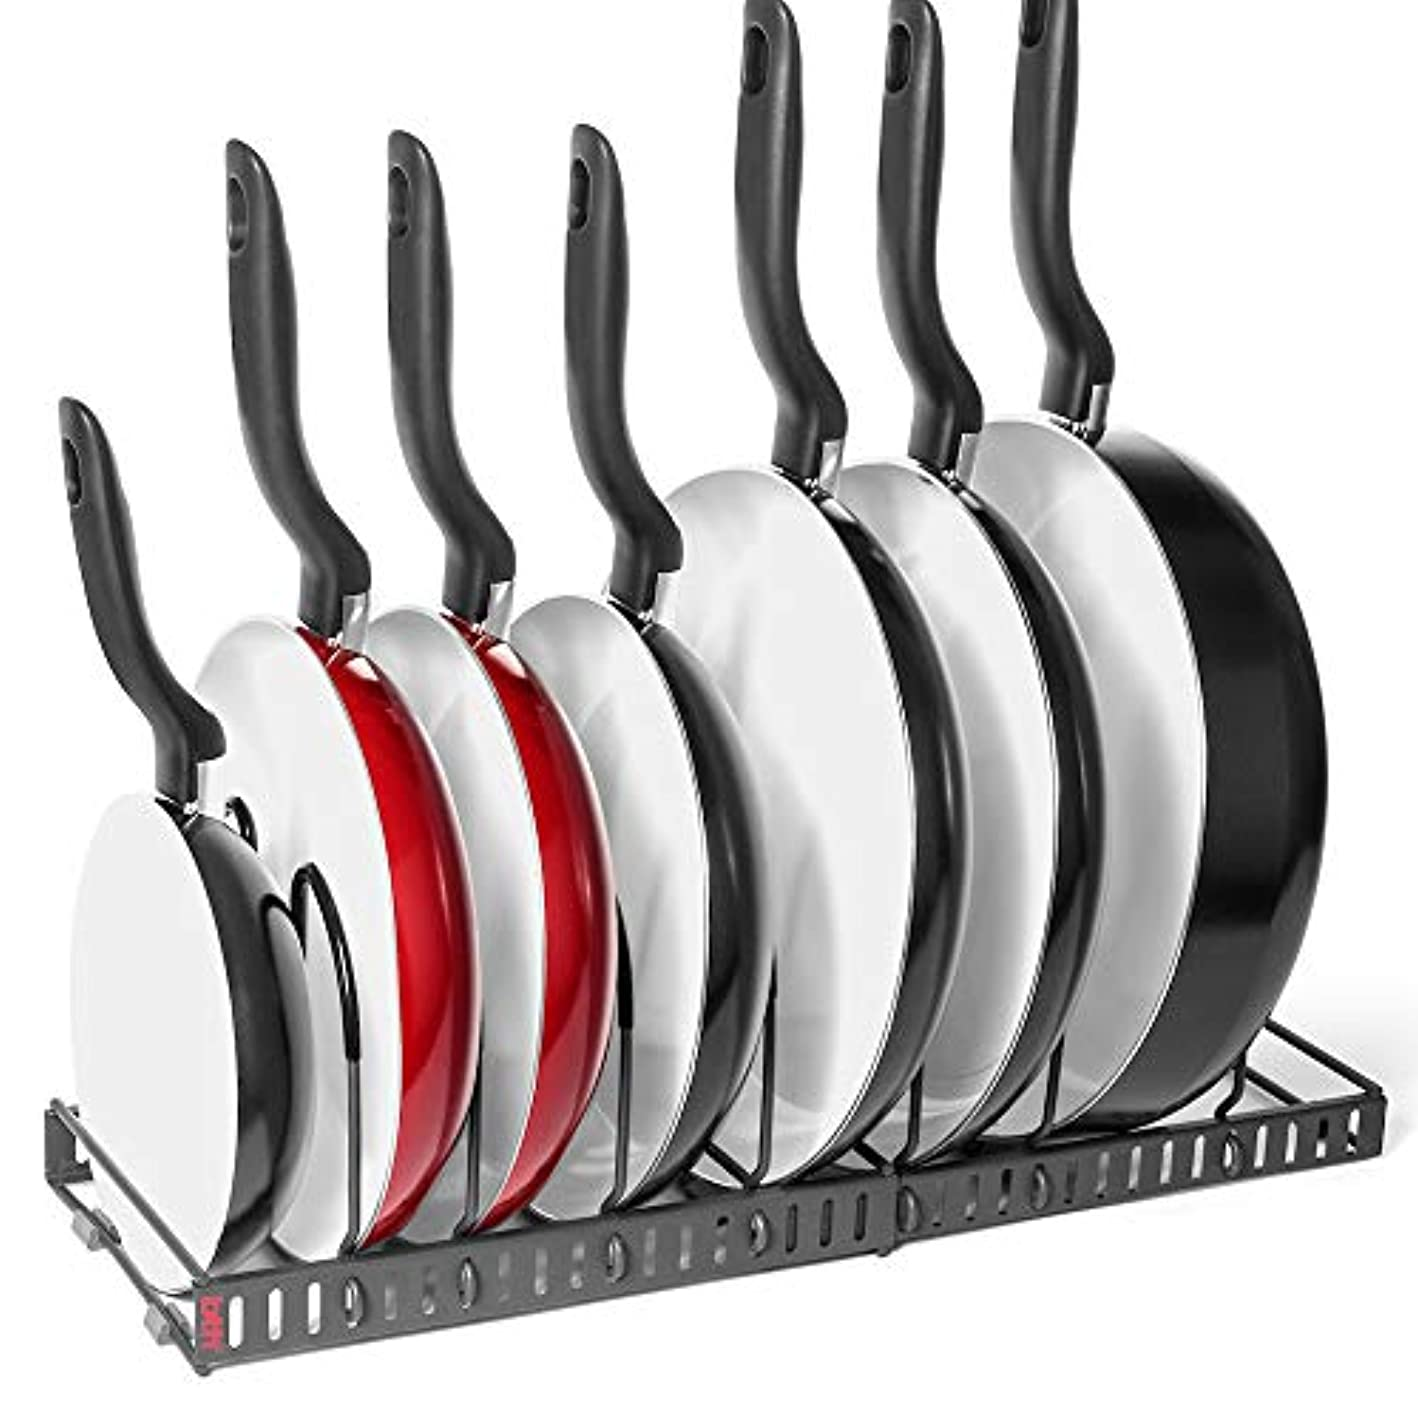 7+ Pans BetterThingsHome Expandable Pan Organizer Rack: Can Be Extended to 22.25